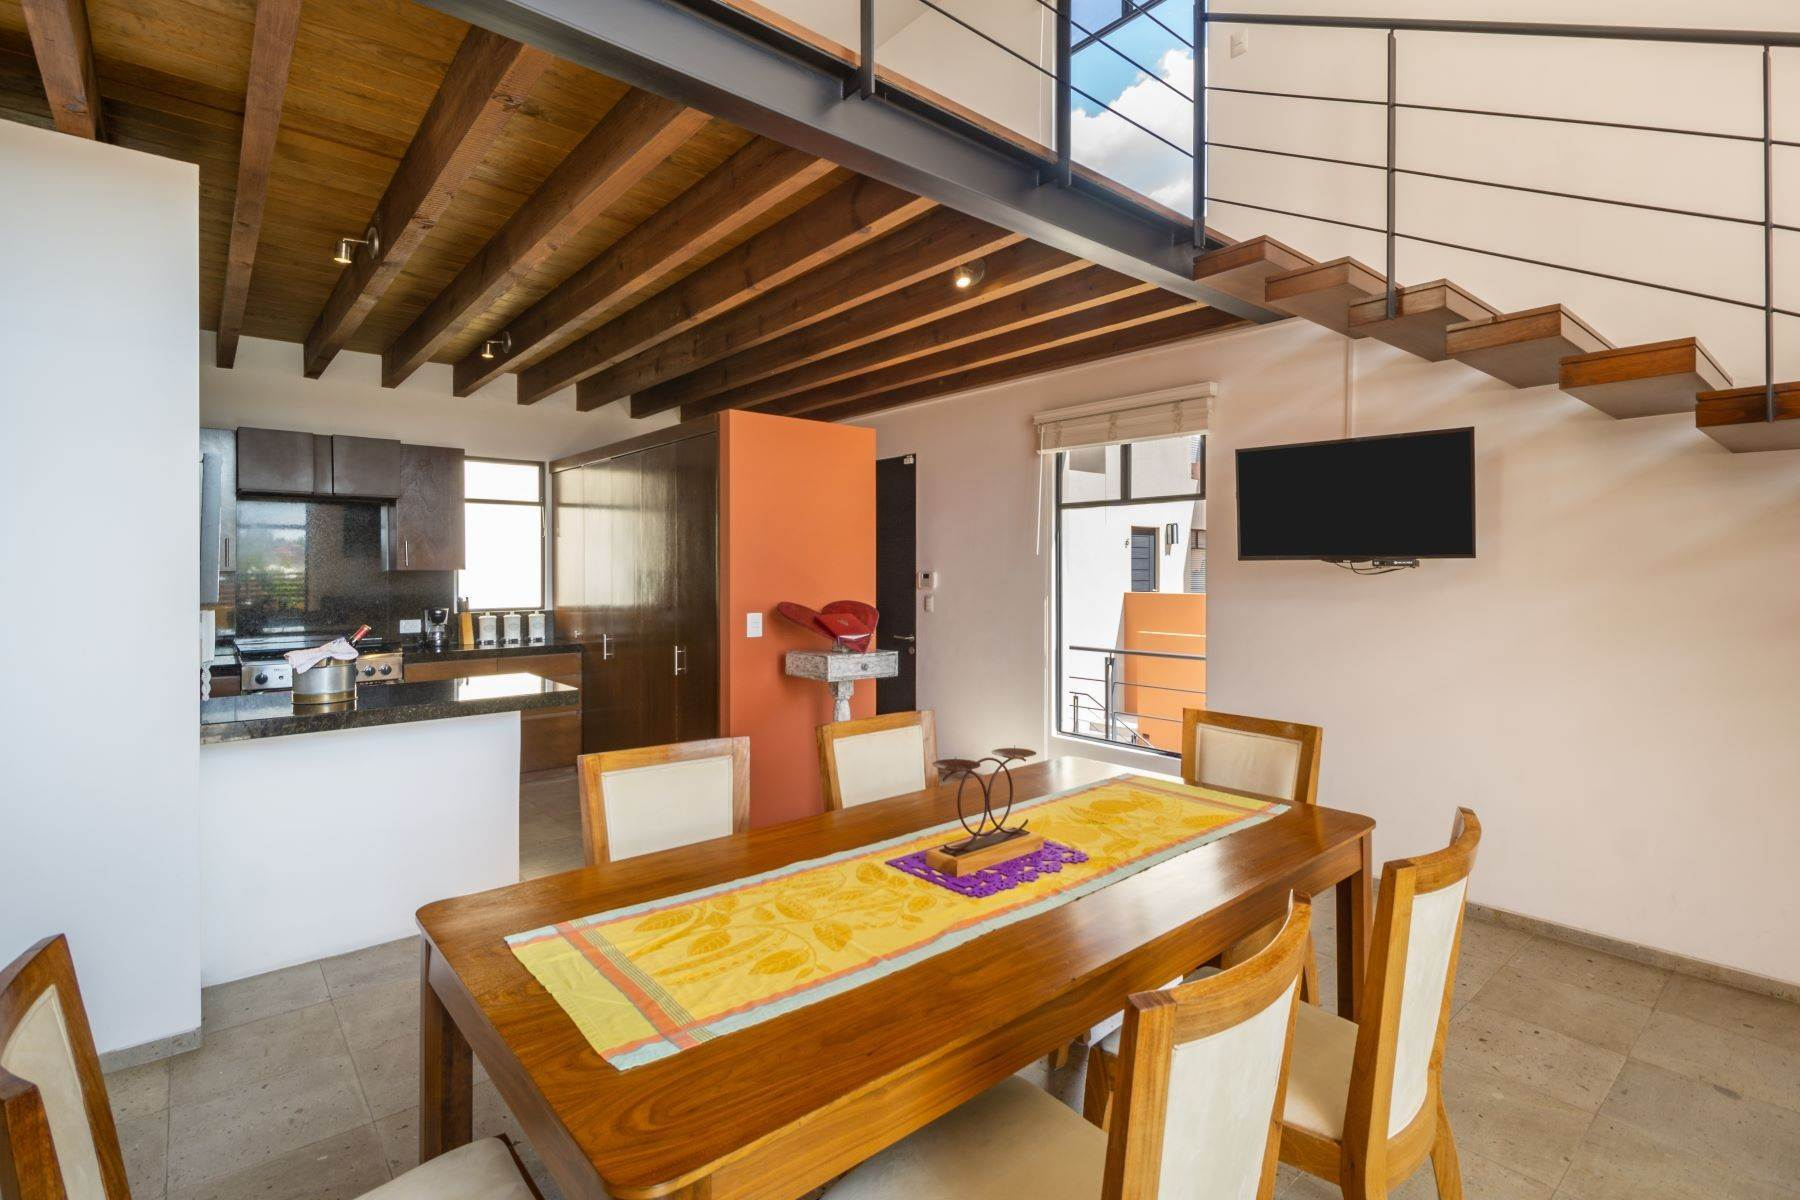 4. Single Family Homes for Sale at Chimal Loft Miguel Araujo 1B San Miguel De Allende, Guanajuato 37700 Mexico